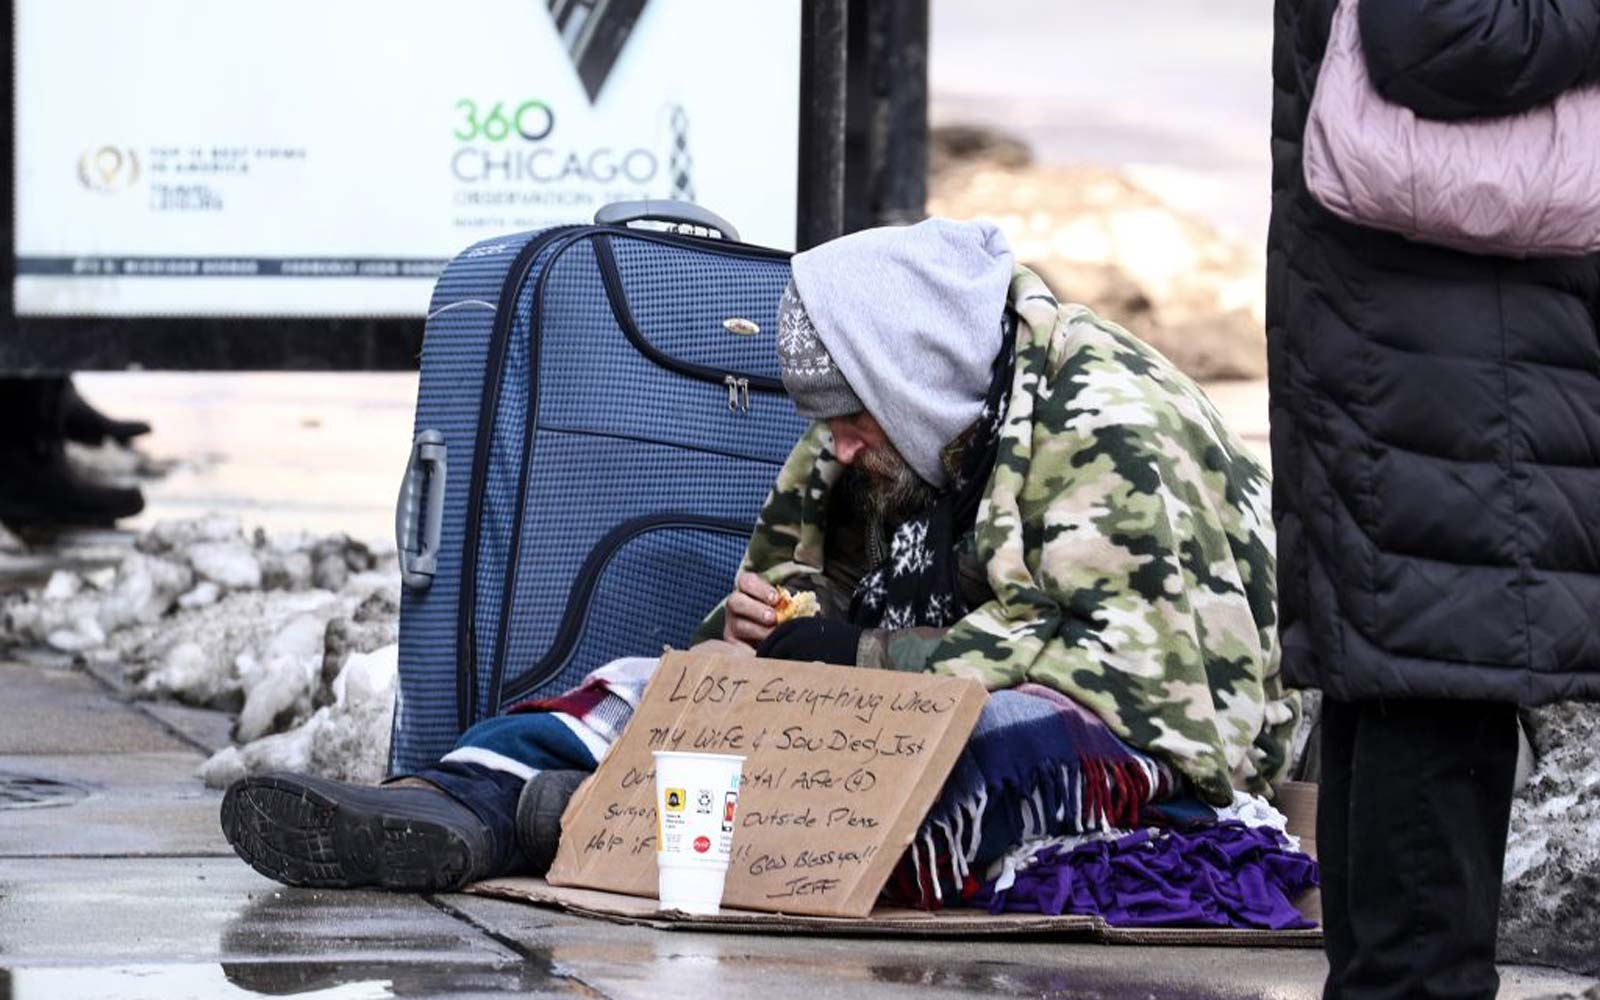 A homeless person tries to stay warm on a street while panhandling during freezing temperatures in Chicago